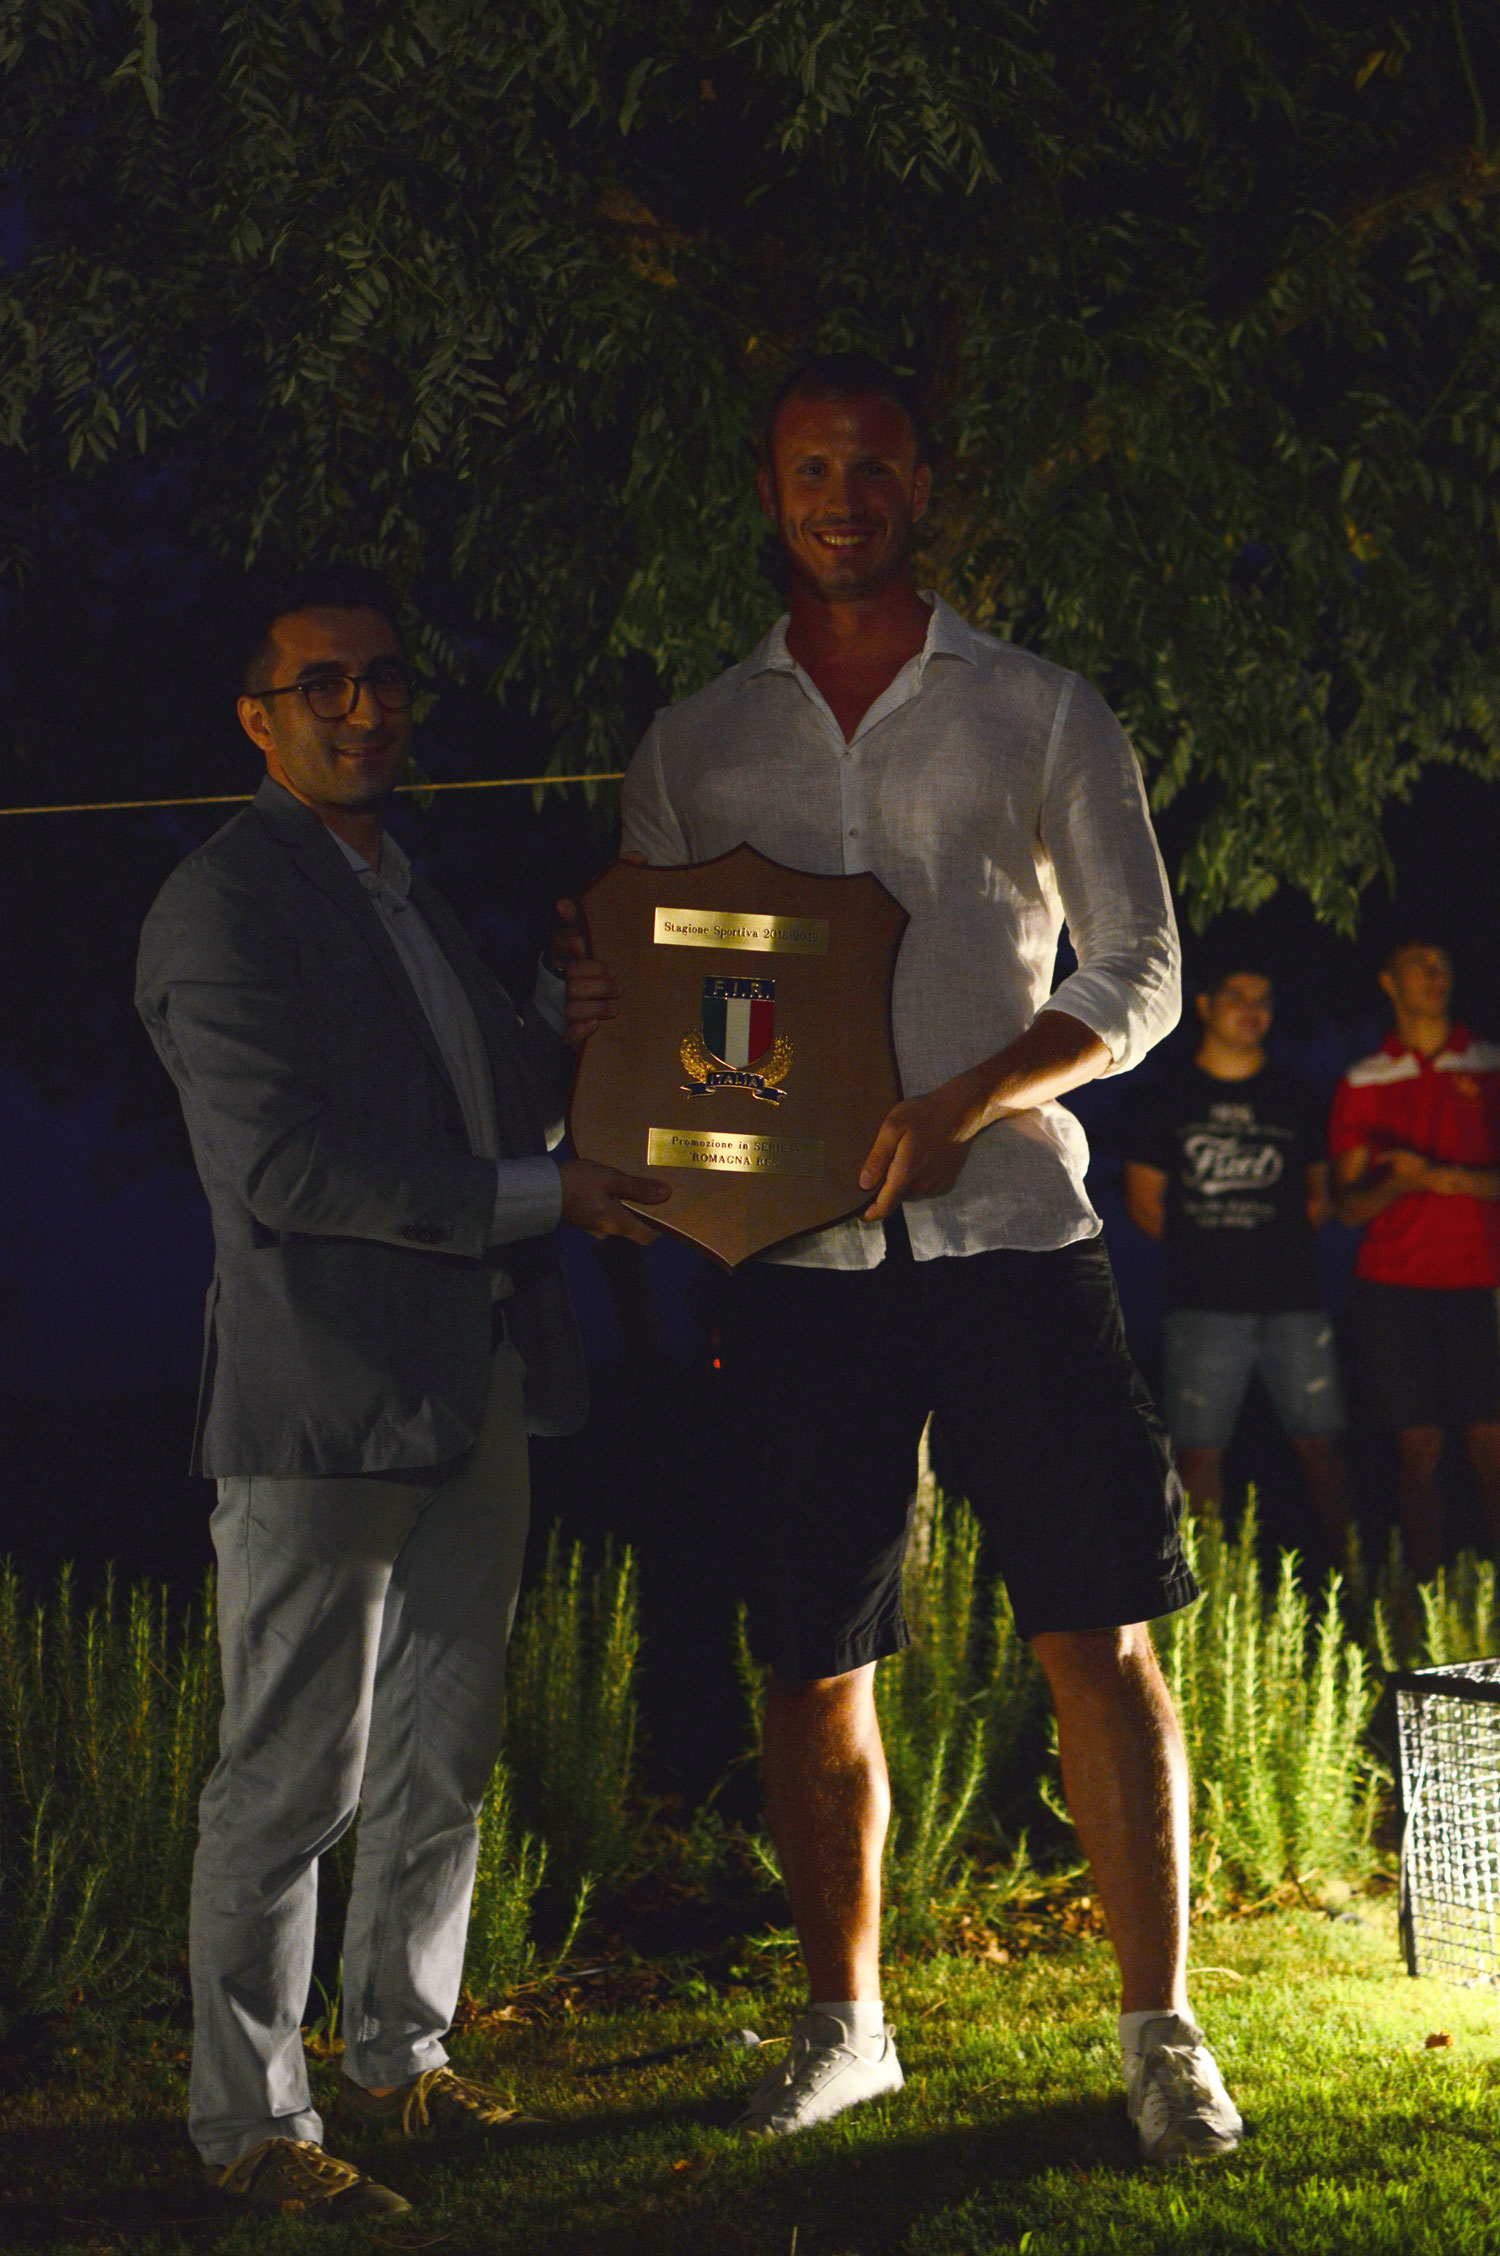 Rugby serie A, Romagna Rfc pronto a ripartire